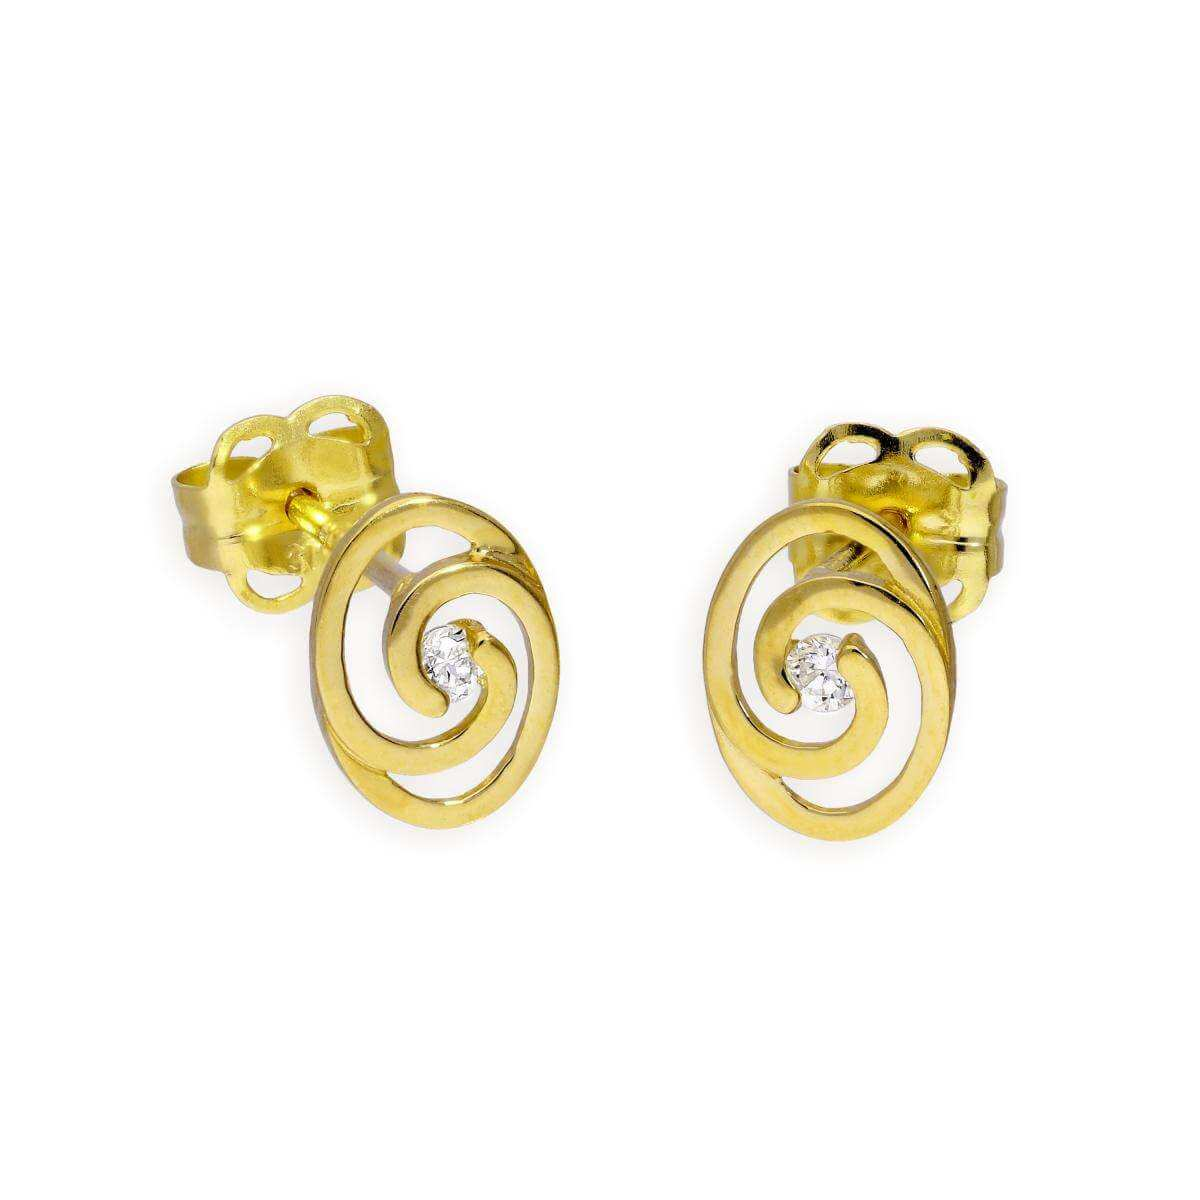 9ct Gold & Clear CZ Crystal Swirl Stud Earrings